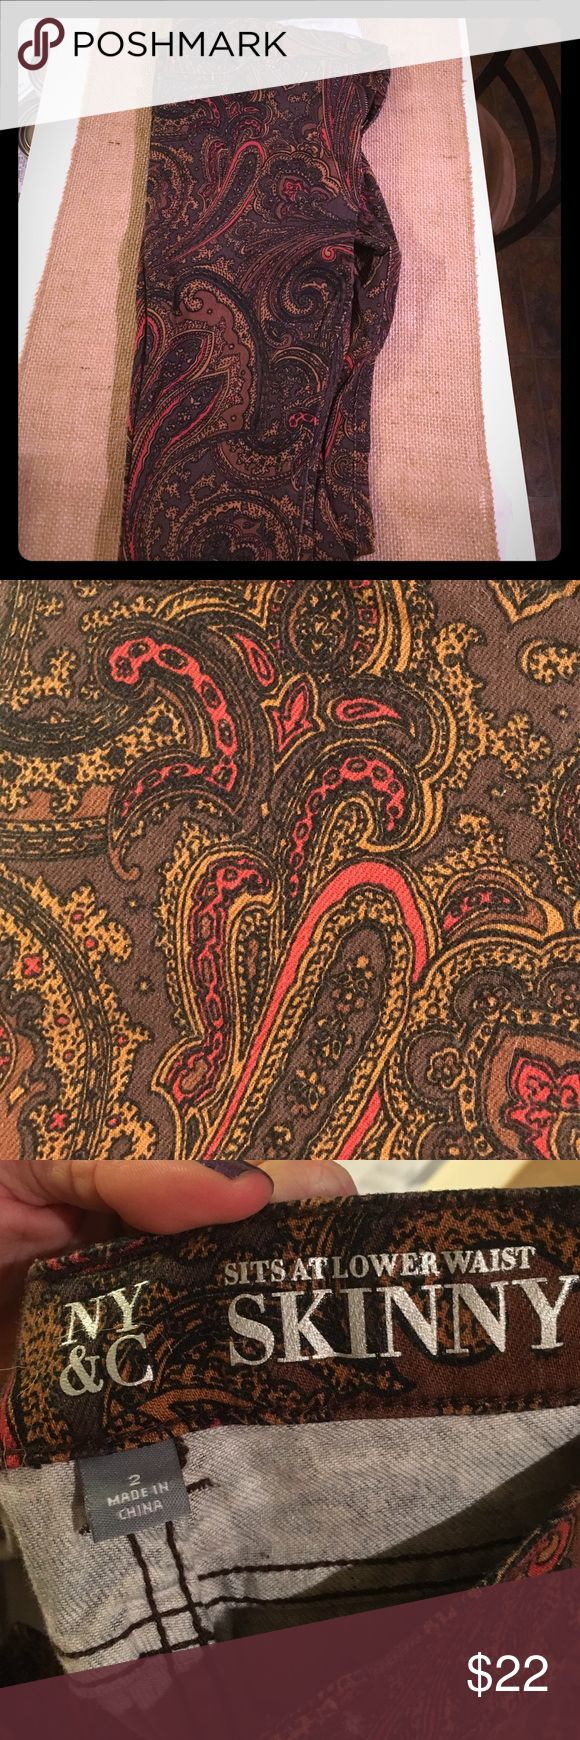 Paisley Brown Skinny Jeans Fun paisley patterned skinny jeans! These are so comfortable and only worn twice. Make me an offer! 😊 New York & Company Jeans Skinny